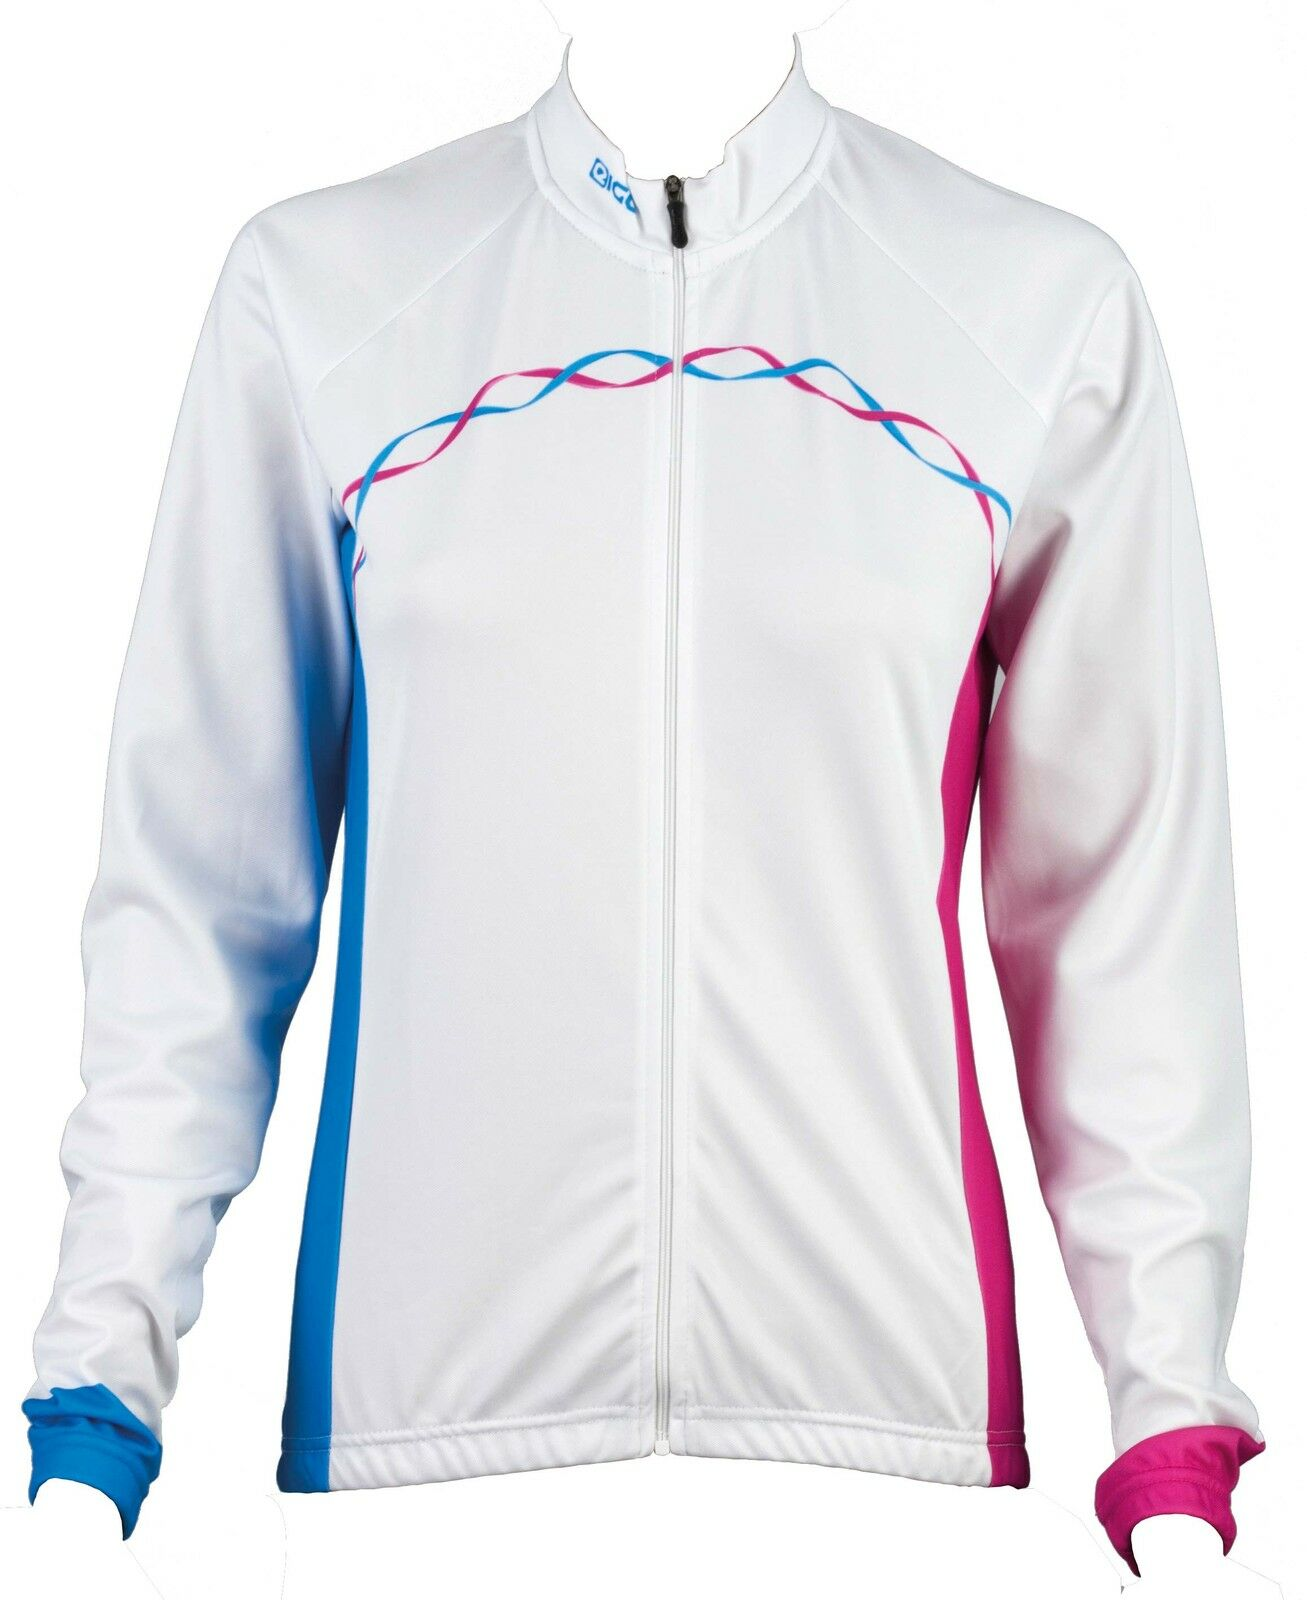 NEW EIGO RIBBON MTB ALL ROAD XC BIKE CYCLING LONG SLEEVE LADIES JERSEY Weiß